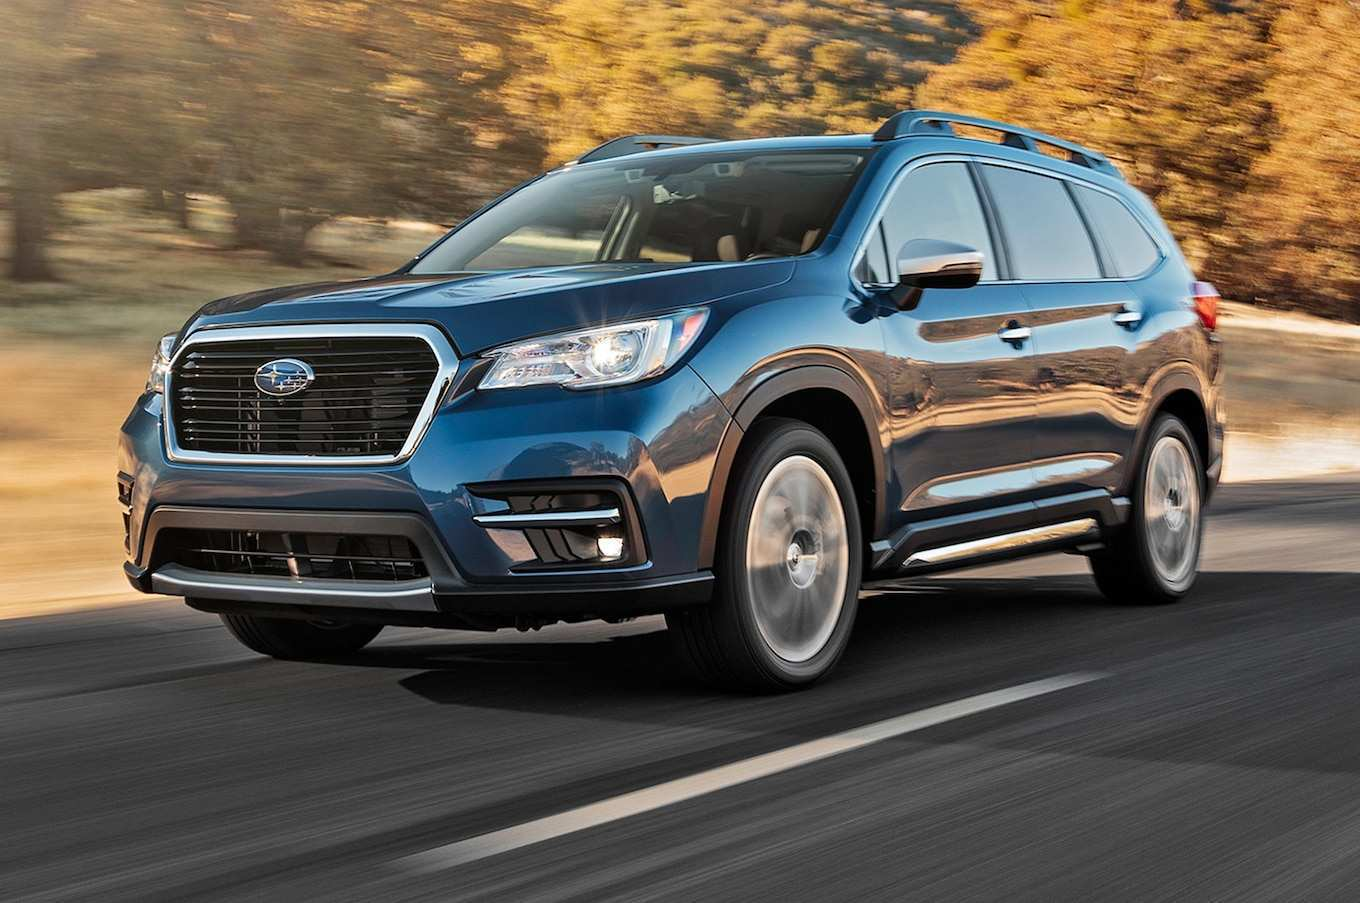 13 New Subaru Ascent 2019 Engine Price and Review by Subaru Ascent 2019 Engine